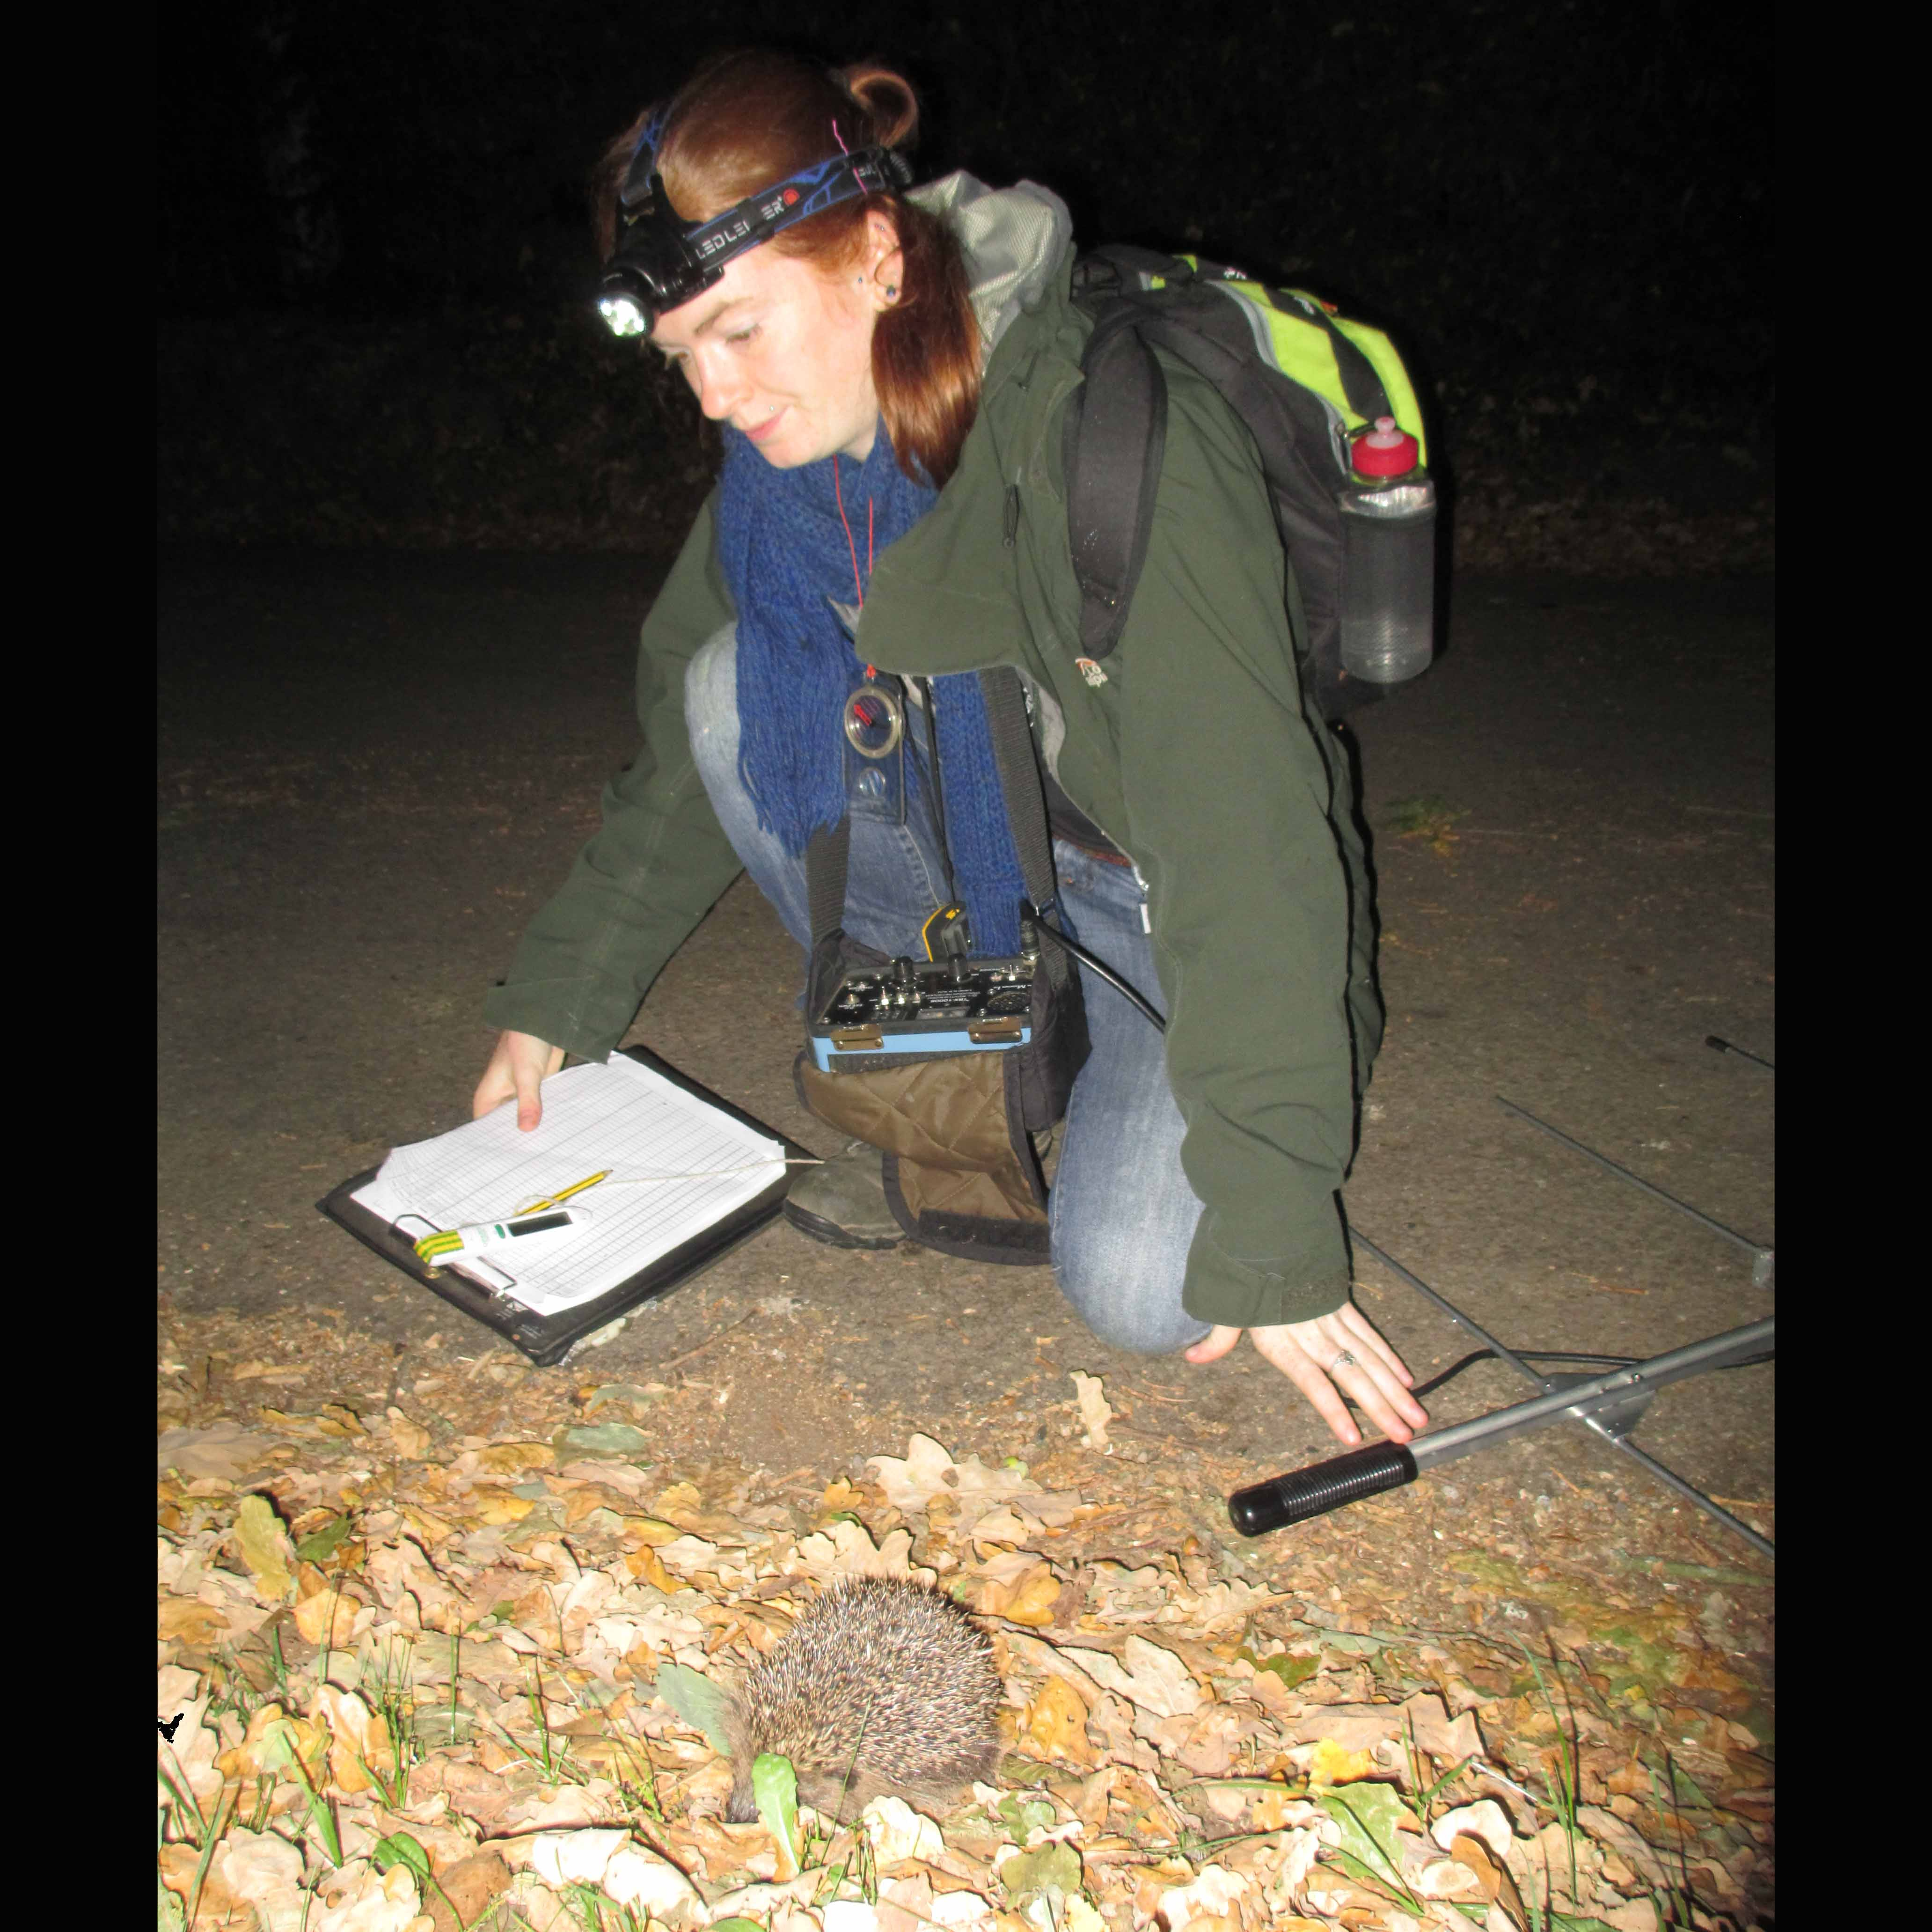 Carly Easby has been radiotracking hedgehogs on arable farmland for her PhD